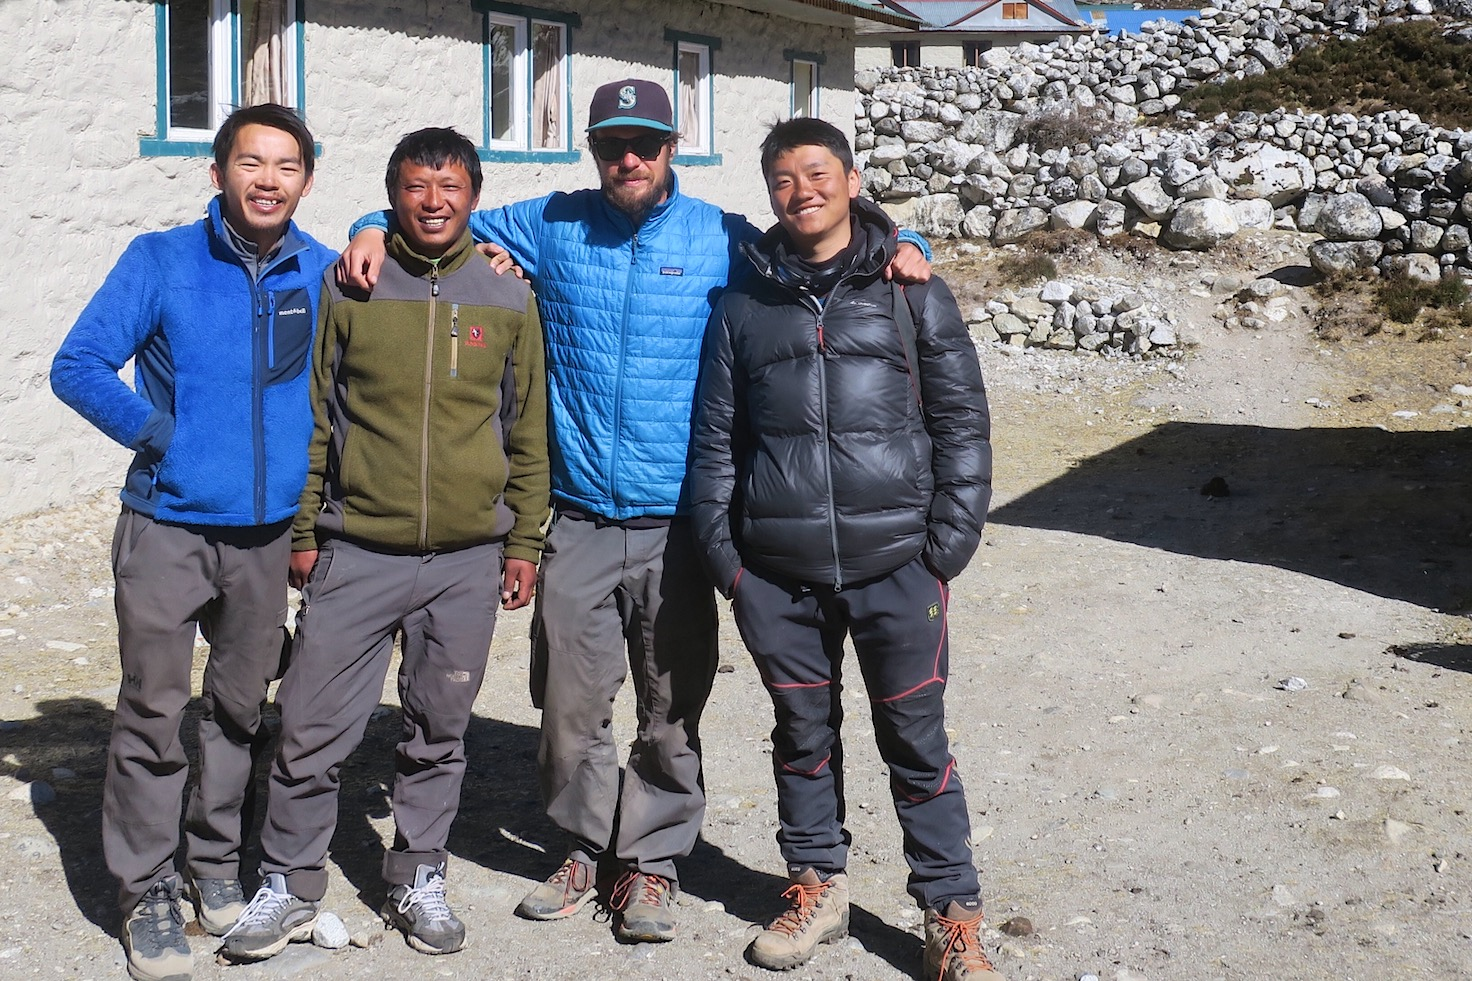 High altitude rescue squad. When Pemba isn't climbing Everest or saving lives, he's owning and operating the Tashi Dalek Lodge in Thagnek, and taking pictures with trekkers.